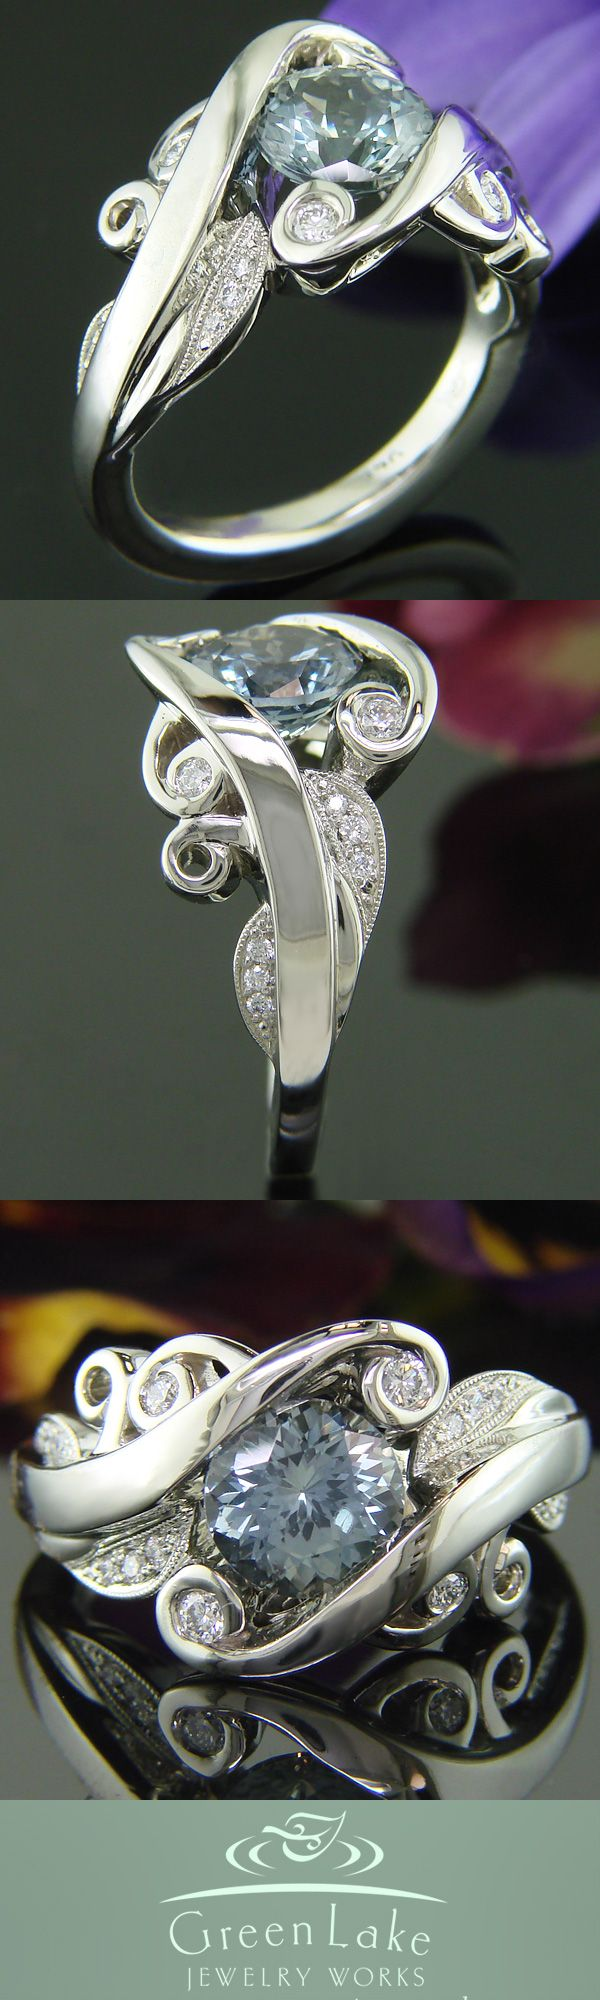 #GreenLakeJewelry swirl ring would make an enchanting #EngagementRing! #Ido